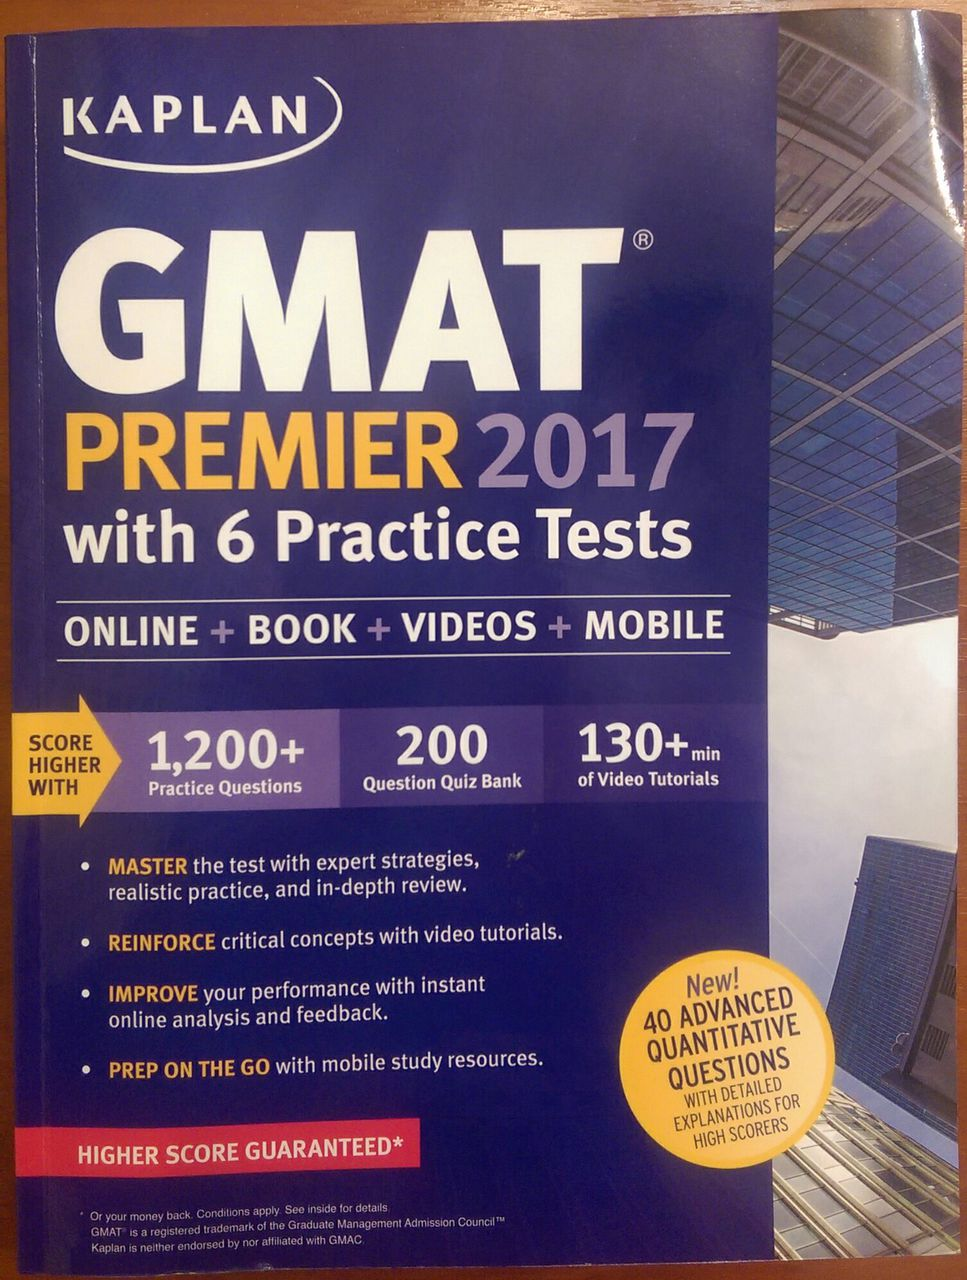 gmat essay practice test Gmat prep guide 2017-2018: test prep book & practice exam questions for the analytical writing, integrated reasoning, quantitative, and verbal sections on the gmac graduate management admission test [gmat advanced review strategy team] on amazoncom free shipping on qualifying offers gmat prep guide 2017-2018: test prep book & practice.